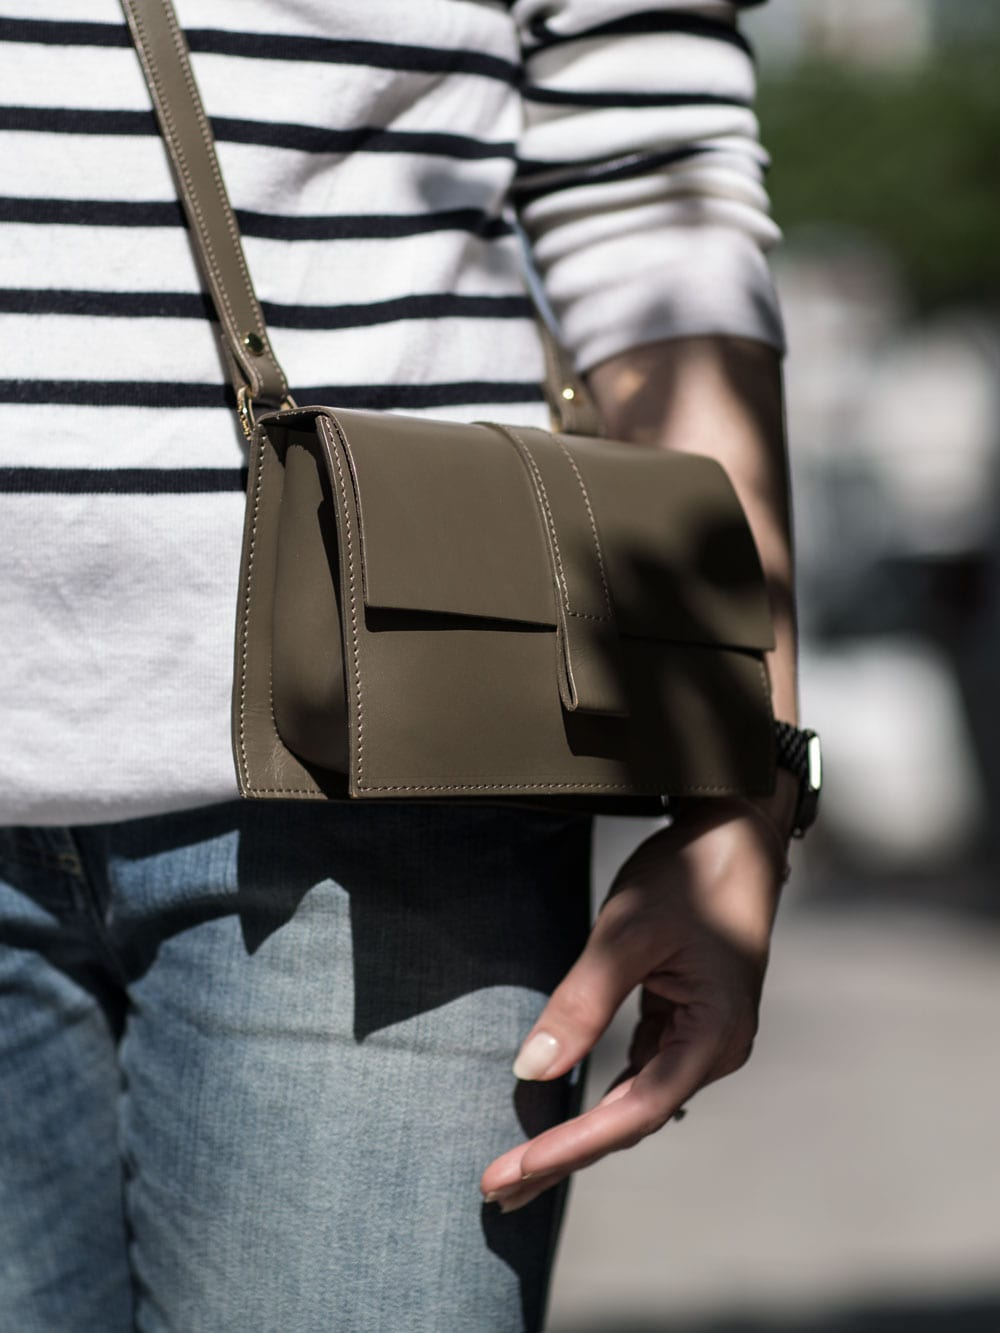 Style&Minimalism | It's Personal | Wearing Armor-Lux Sweater, Closed Peddle Jeans, ATP Atelier Rosa Sandals, Danielle Foster Bag